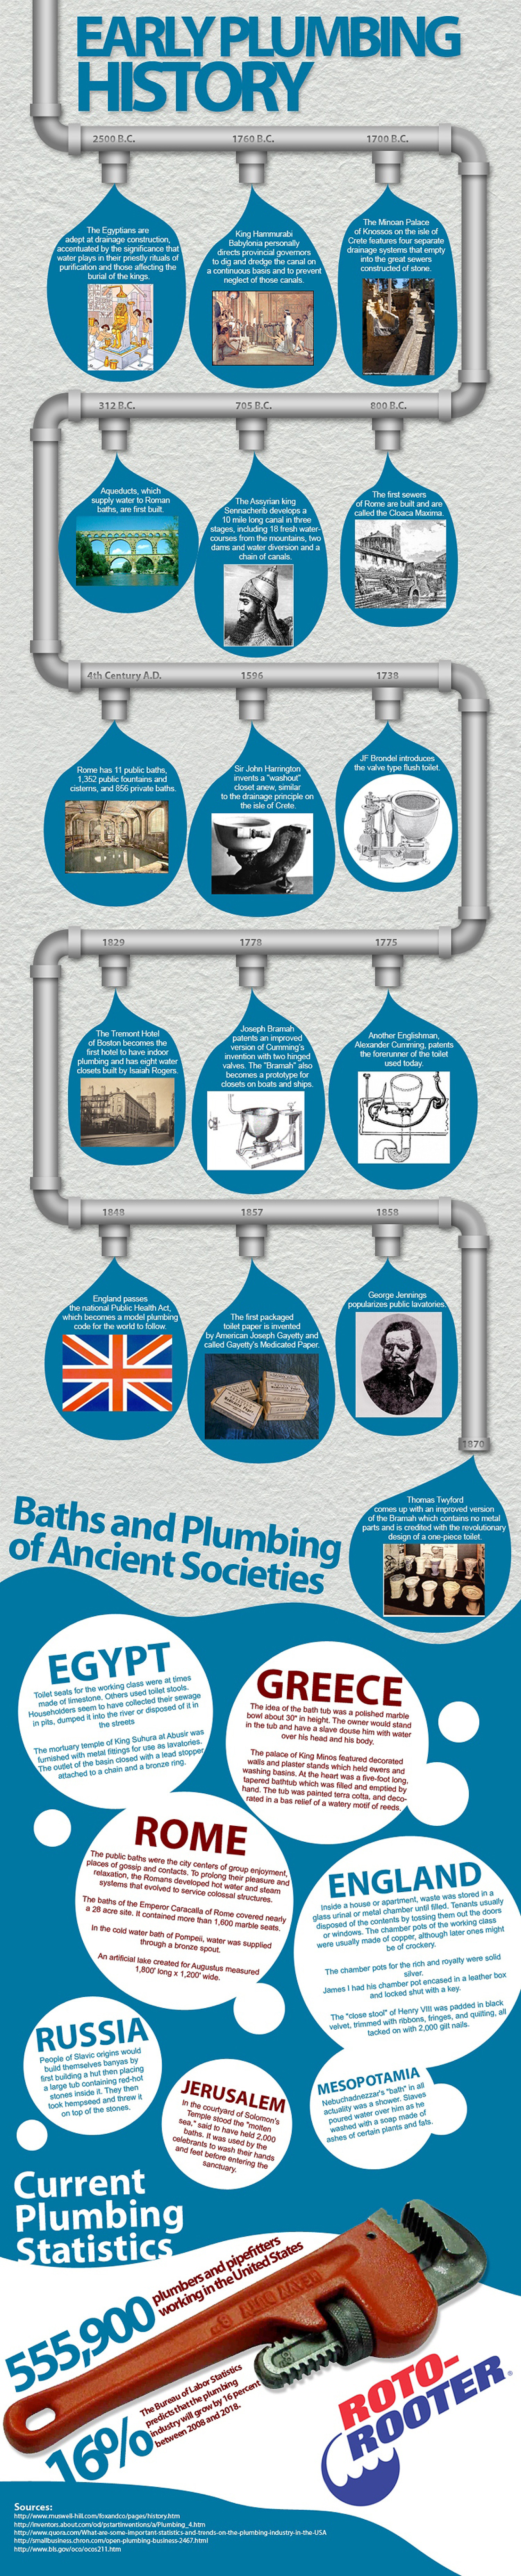 Sunkel Plumbing - History of Pluming  Infographic